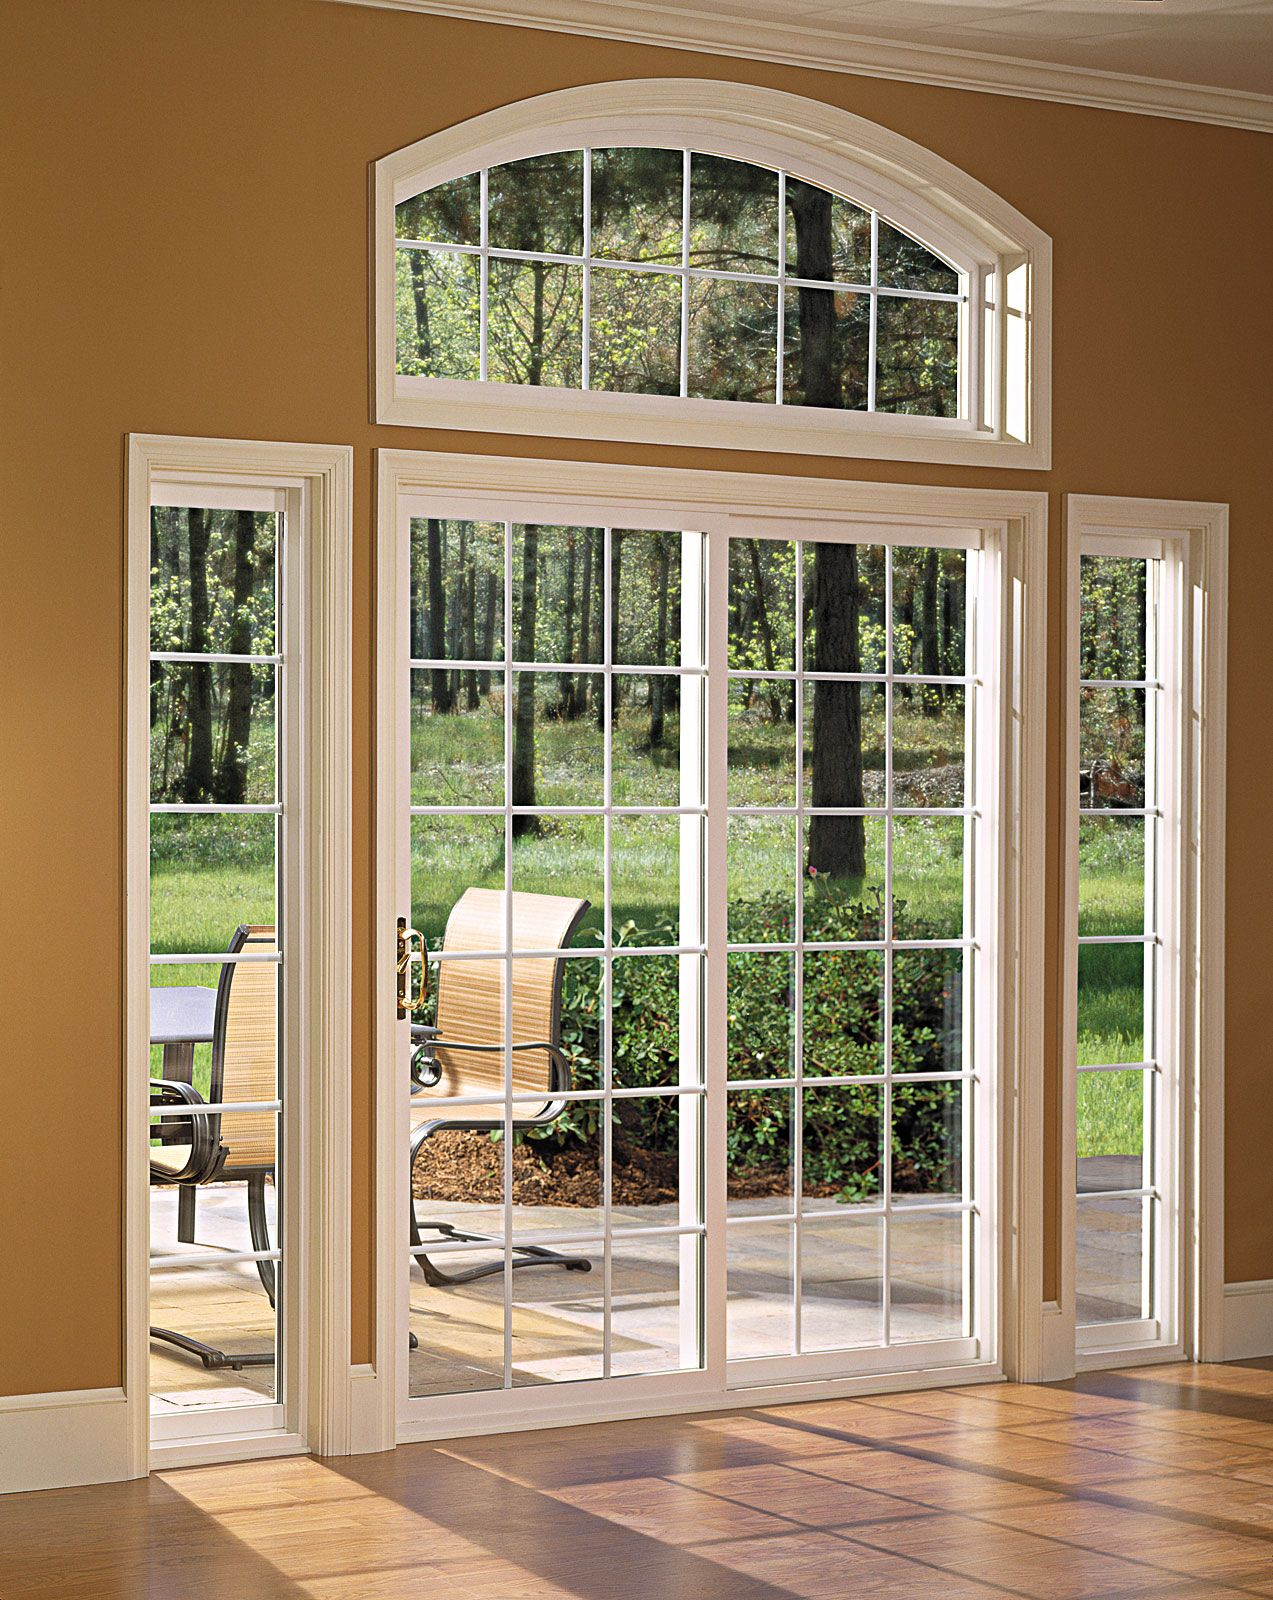 Attirant Big Market Research: Windows U0026 Doors Markets In China Chinau0027s Demand For  Windows U0026 Doors Has Grown At A Fast Pace In The Past Decade. In The Next  Decade, ...